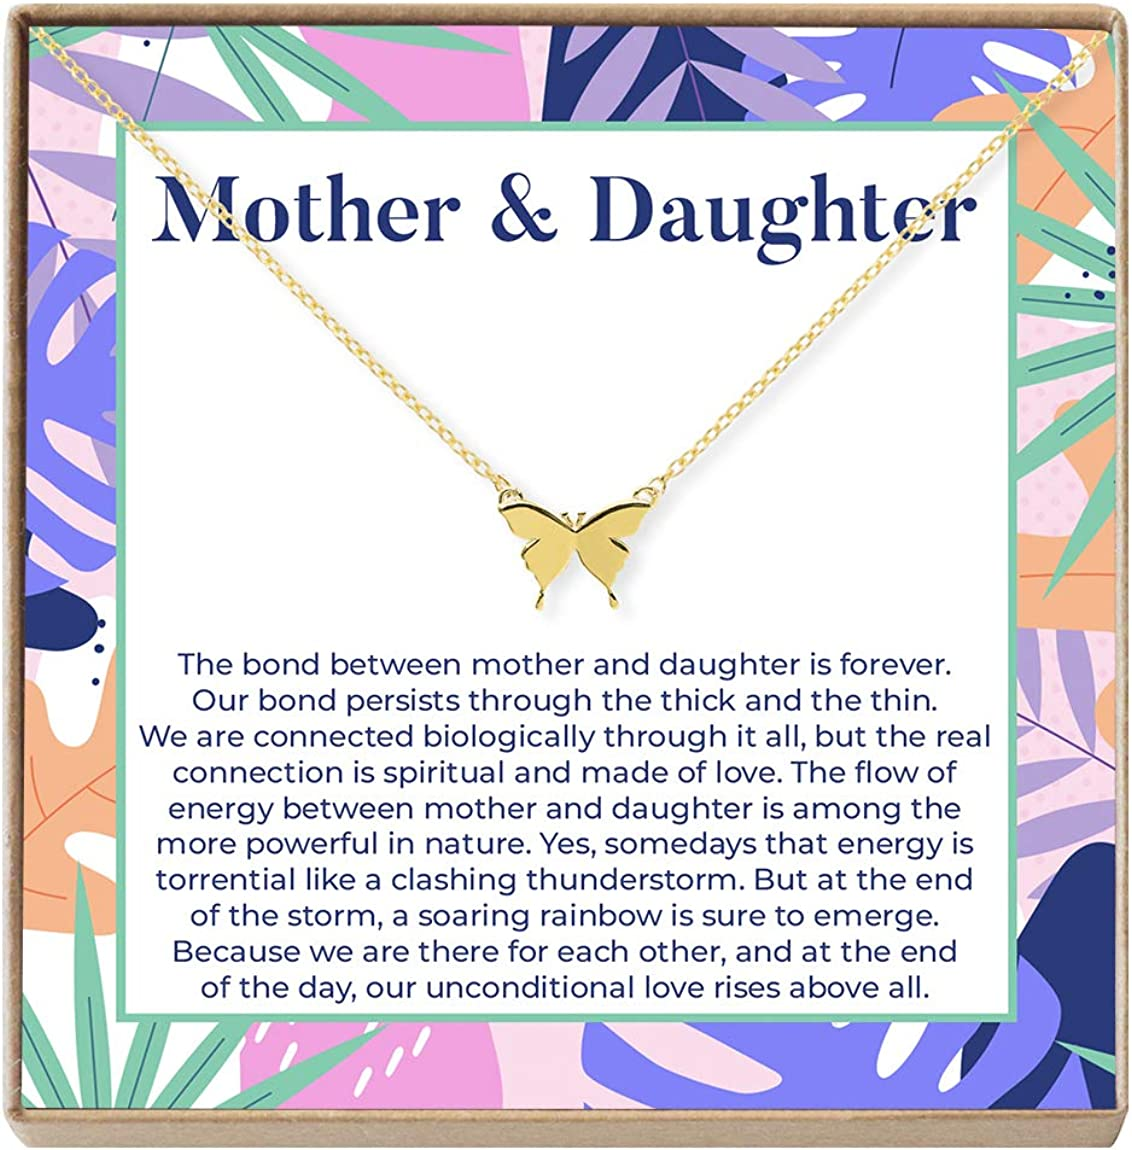 Mother Daughter Necklace - Max 51% OFF Gift ideas Card New life Jewelr Heartfelt